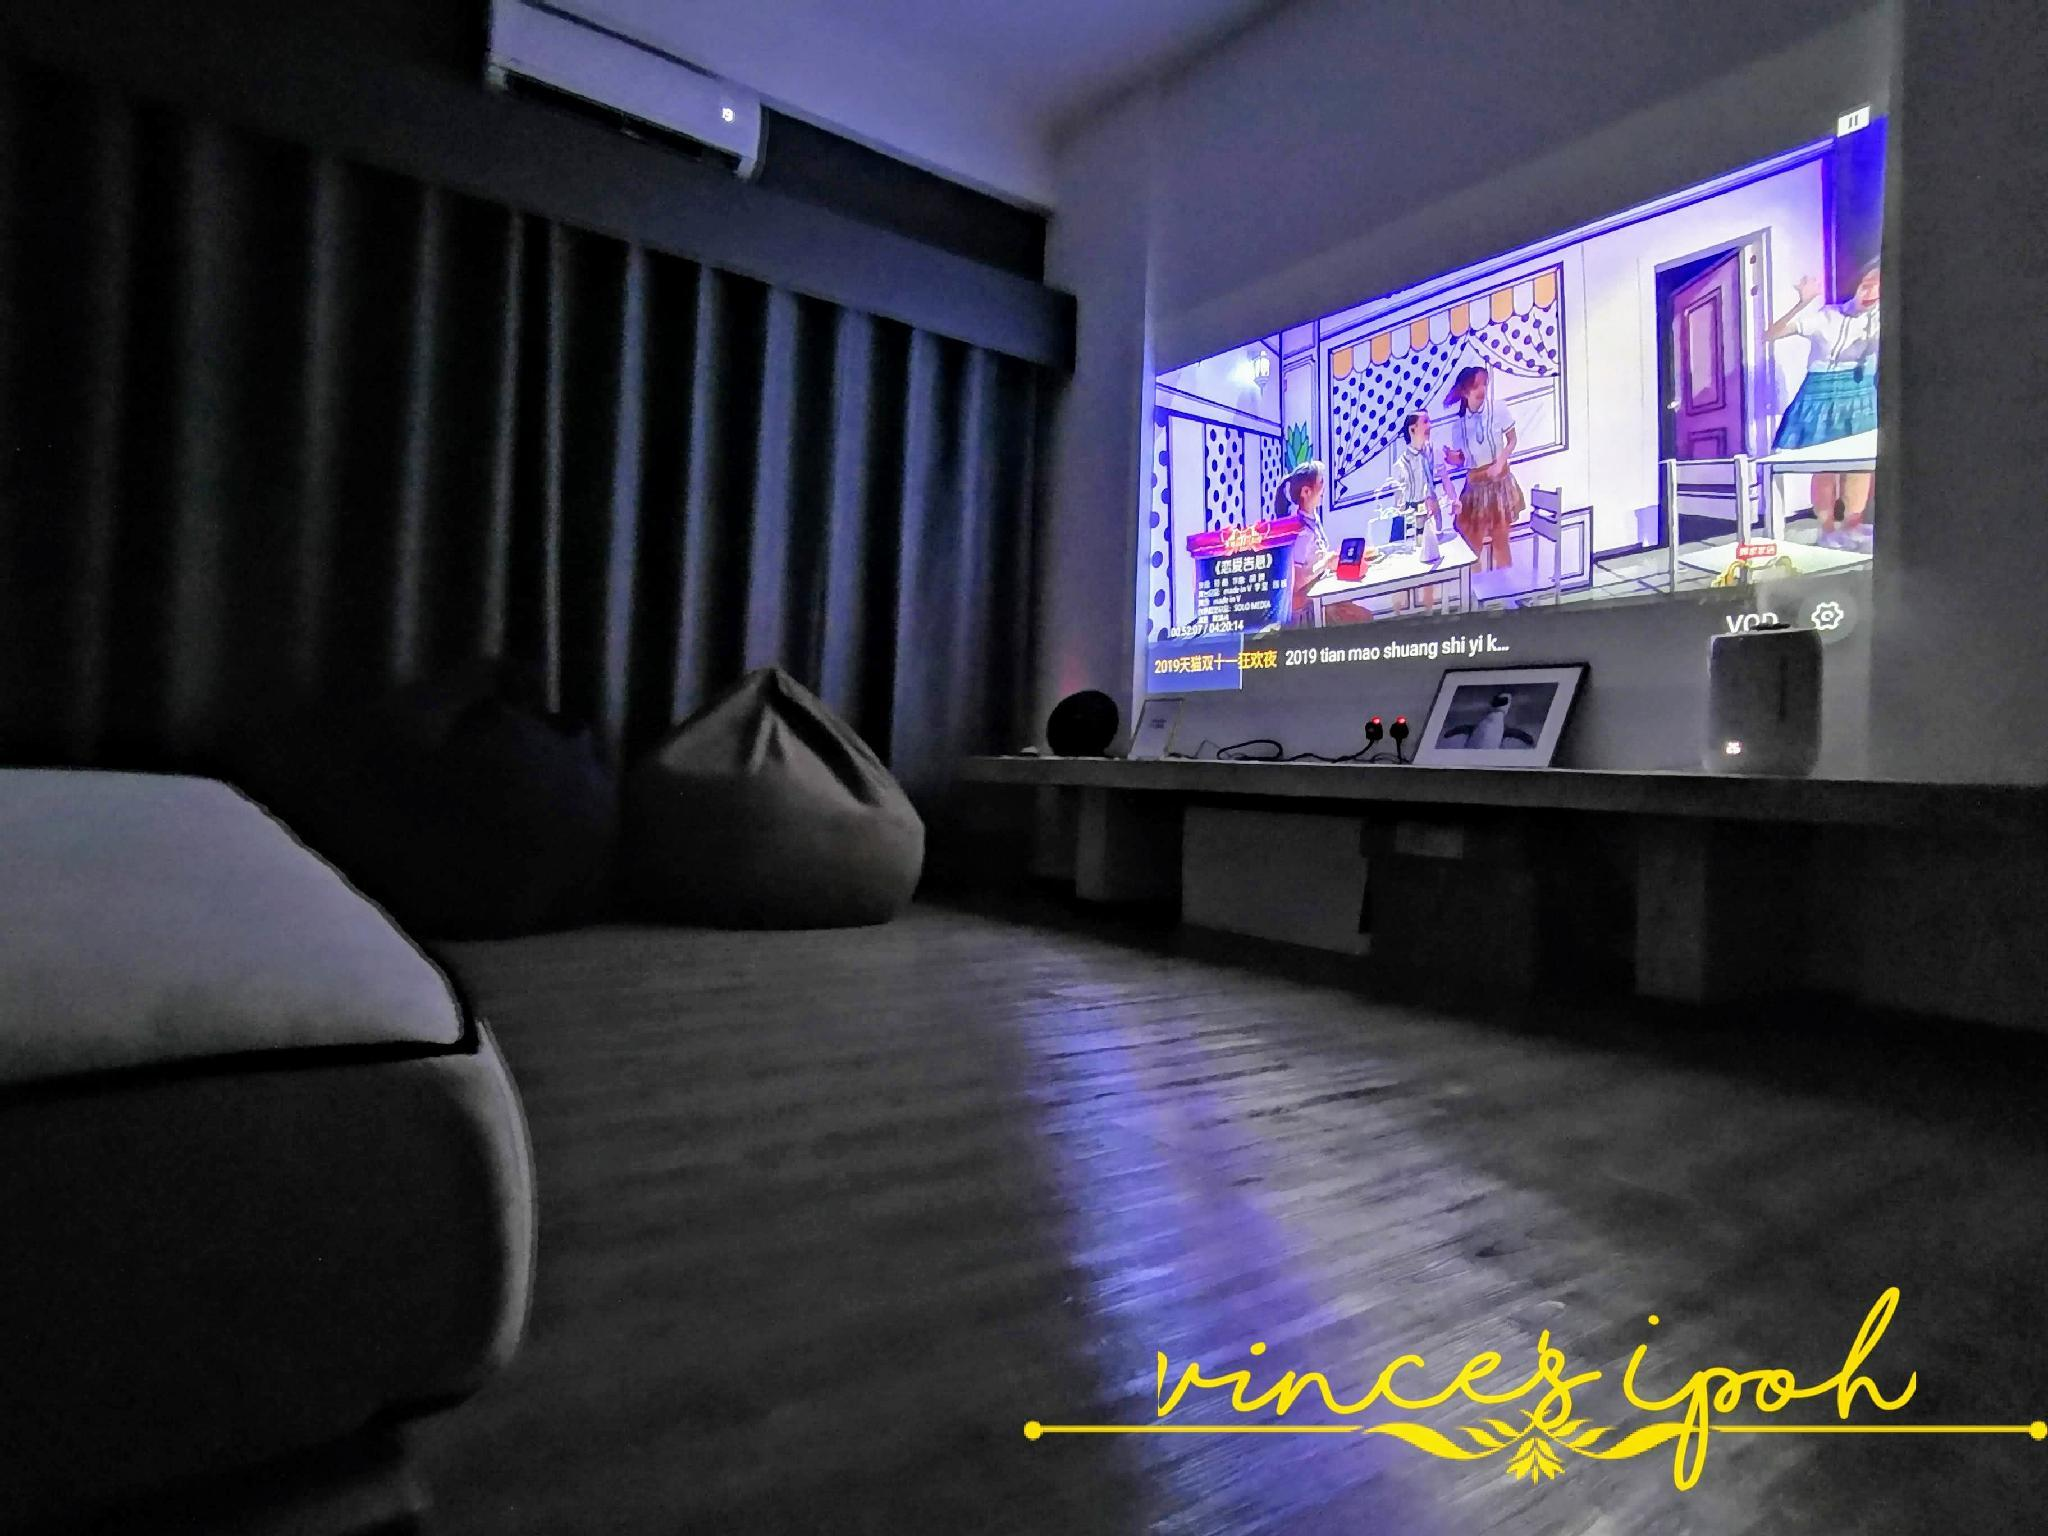 [Projector] Vince ipoh luxurious condo Lost world